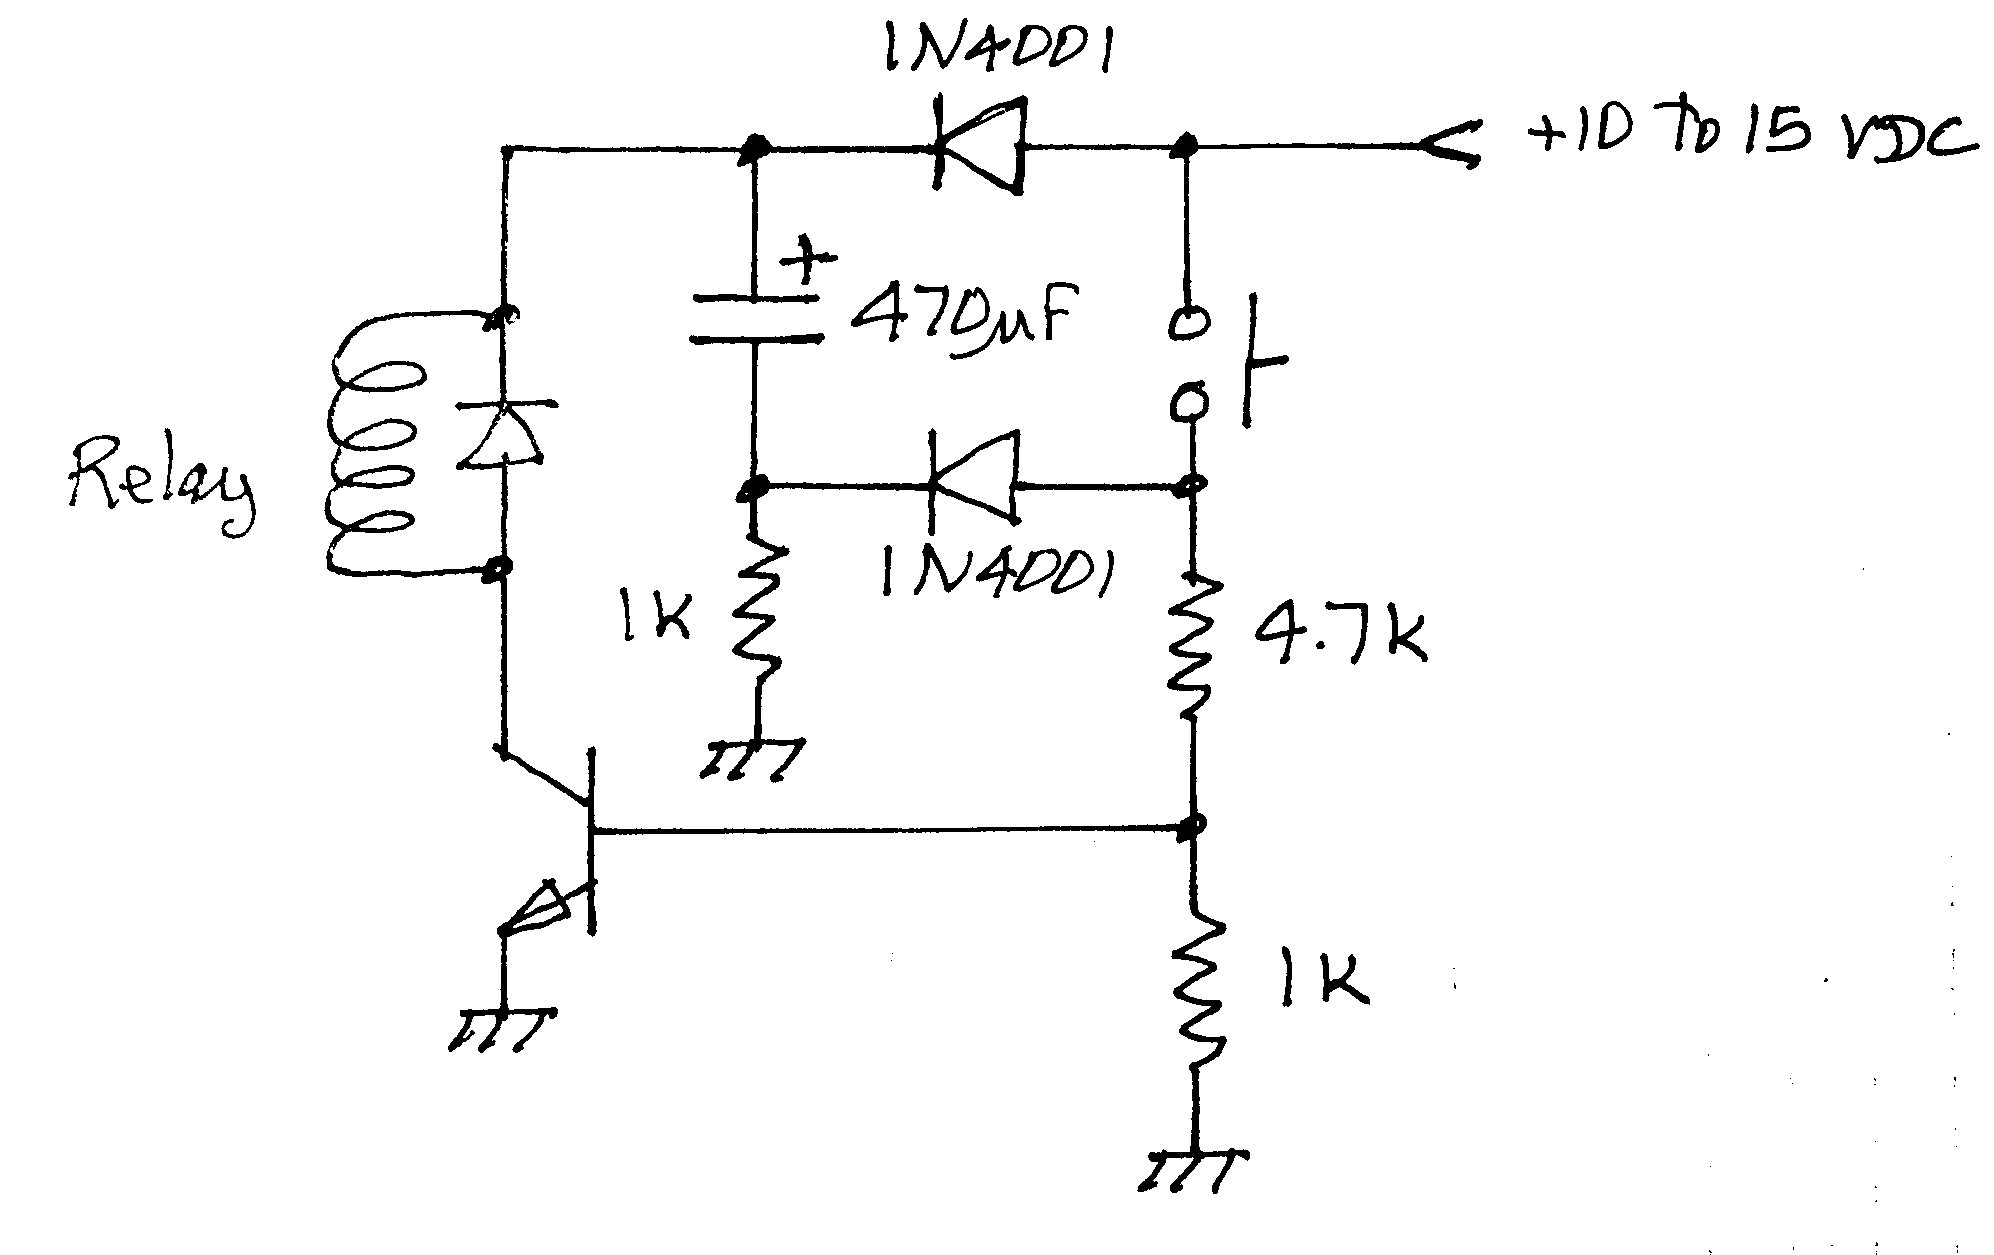 24vdc Relay Schematic - Getting Ready With Wiring Diagram • on 12v cummins motor, 12v led bulbs, 12v dash lights, 12v battery tester, cable wiring, 12v lantern battery, 12v led module, 12v distribution block, sensor wiring, 12v led lights, 12 volt dc wiring, 12v electric motor, ignition switch wiring, ignition resistor wiring, starter wiring, illuminated switch wiring, 12 volt battery wiring, 12v starter, car alternator wiring, 12v terminal block,